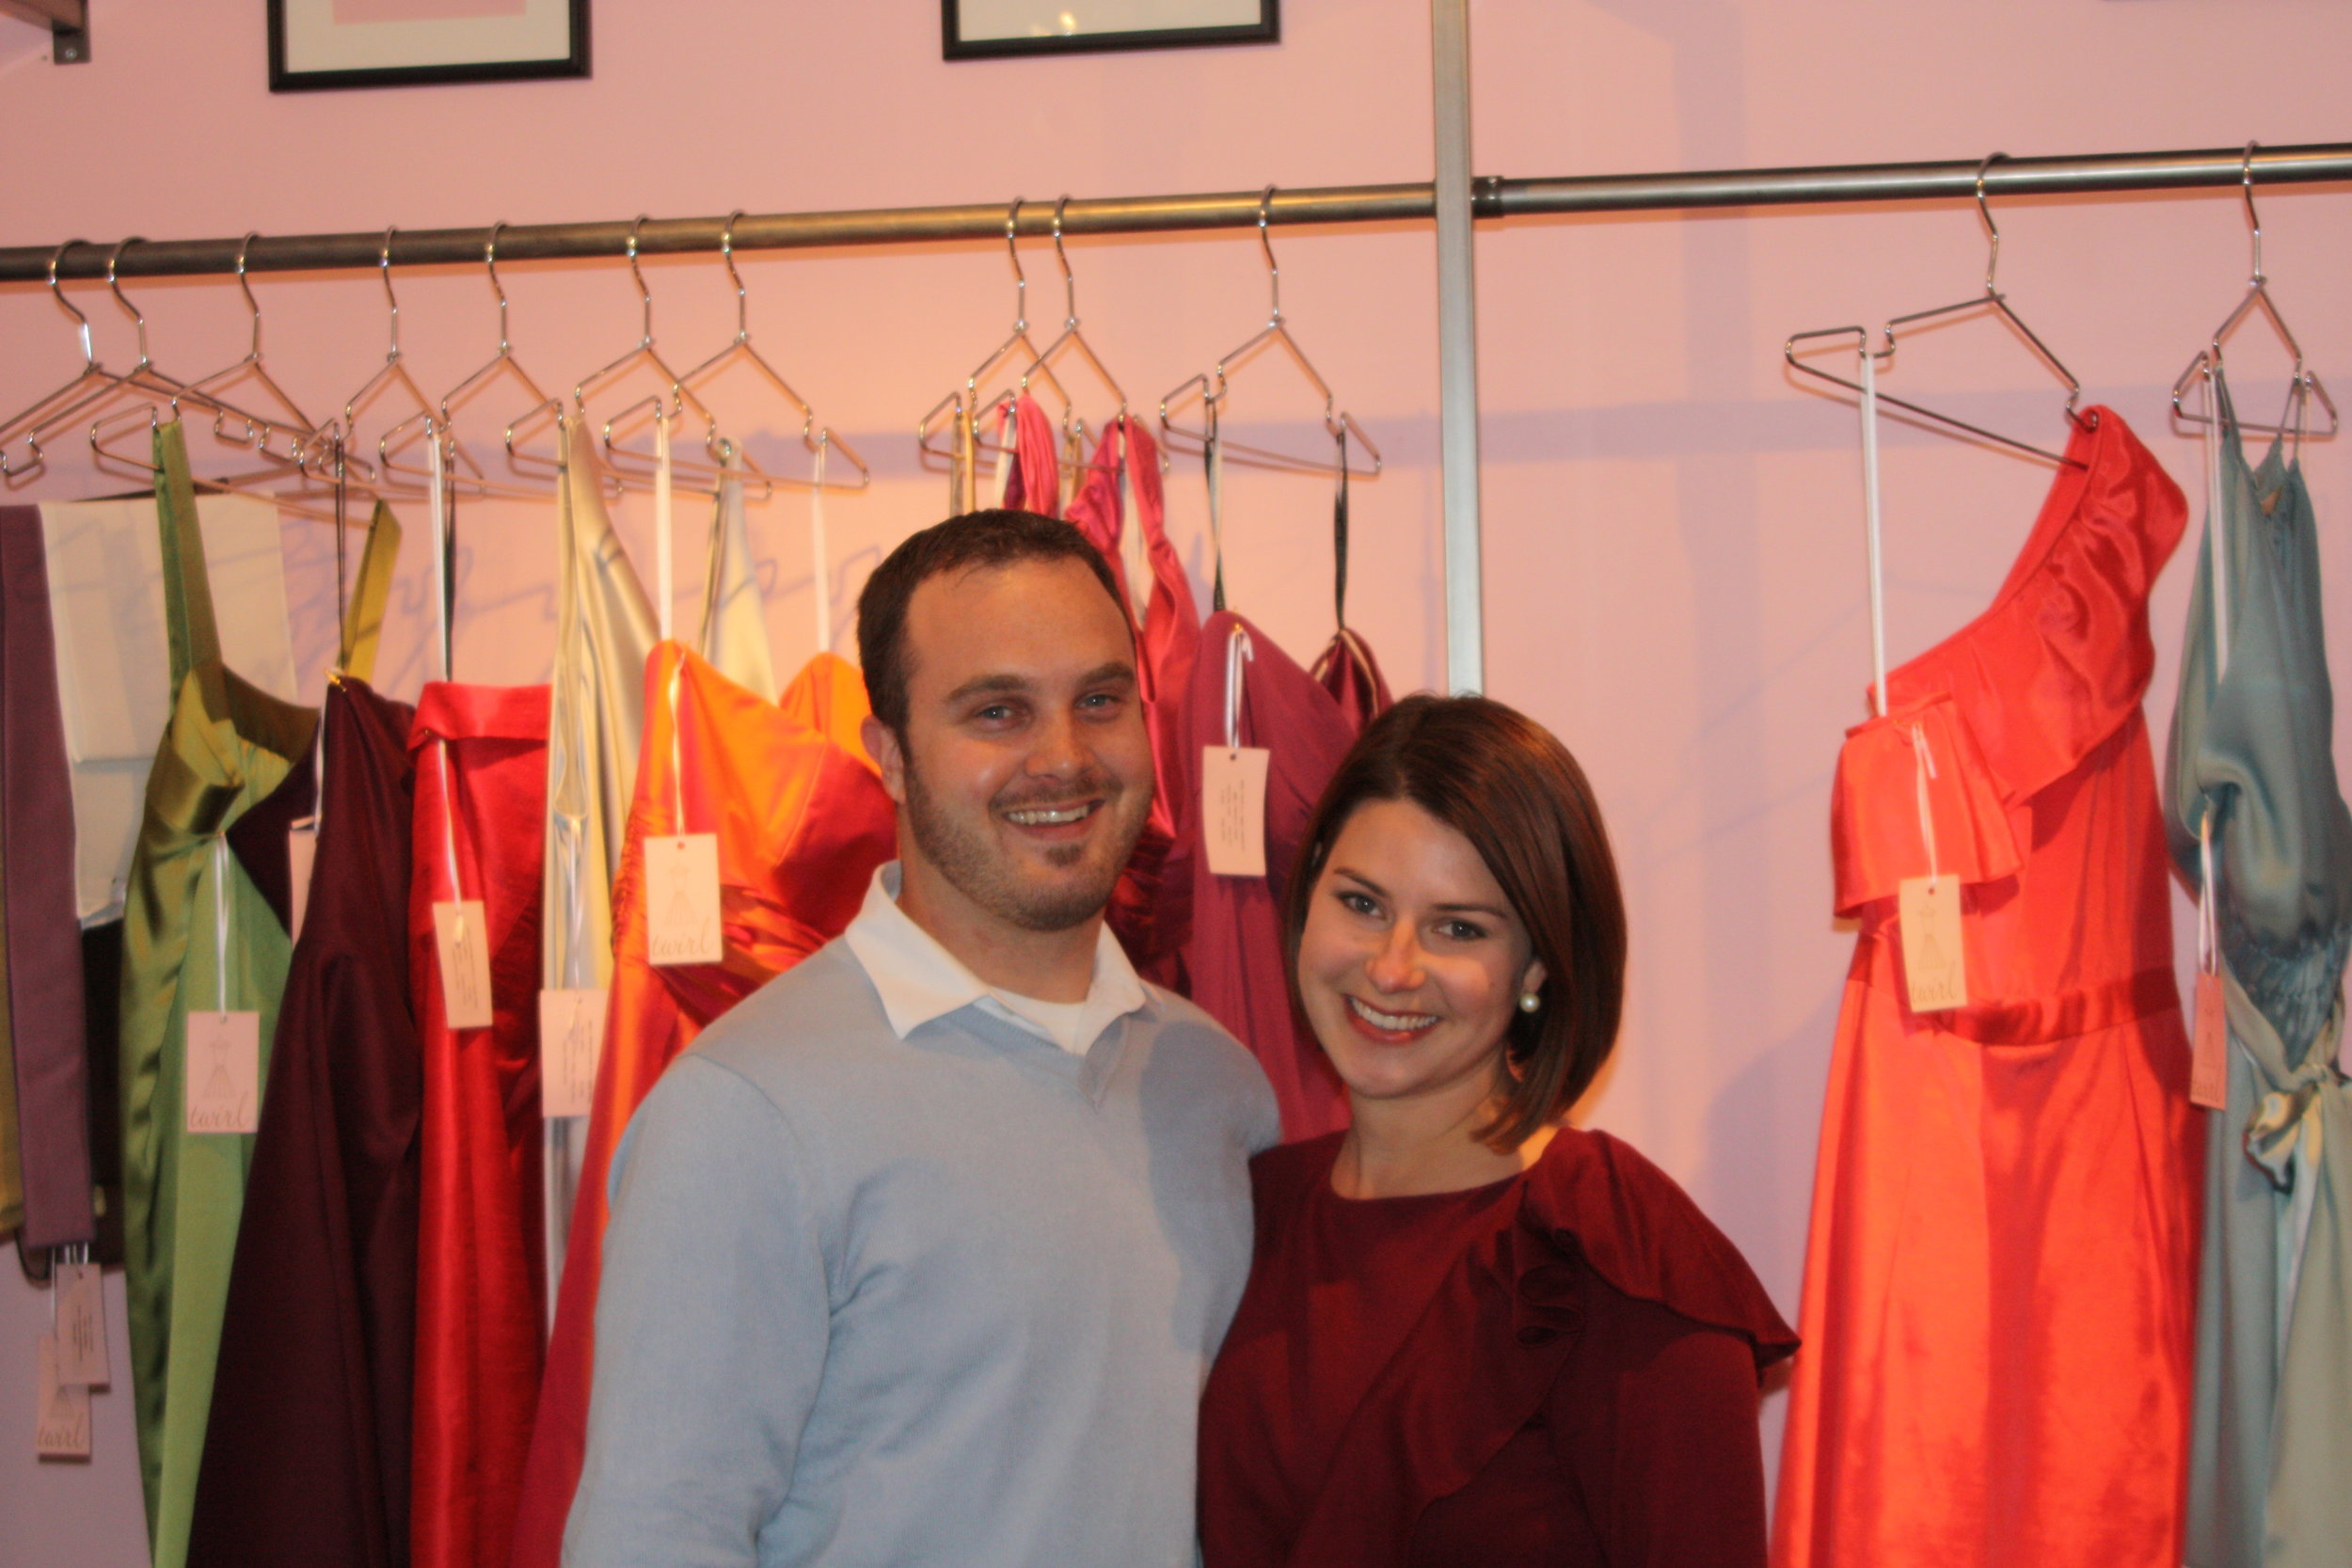 Opening Day at Twirl in 2009. Newly engaged and SO young!